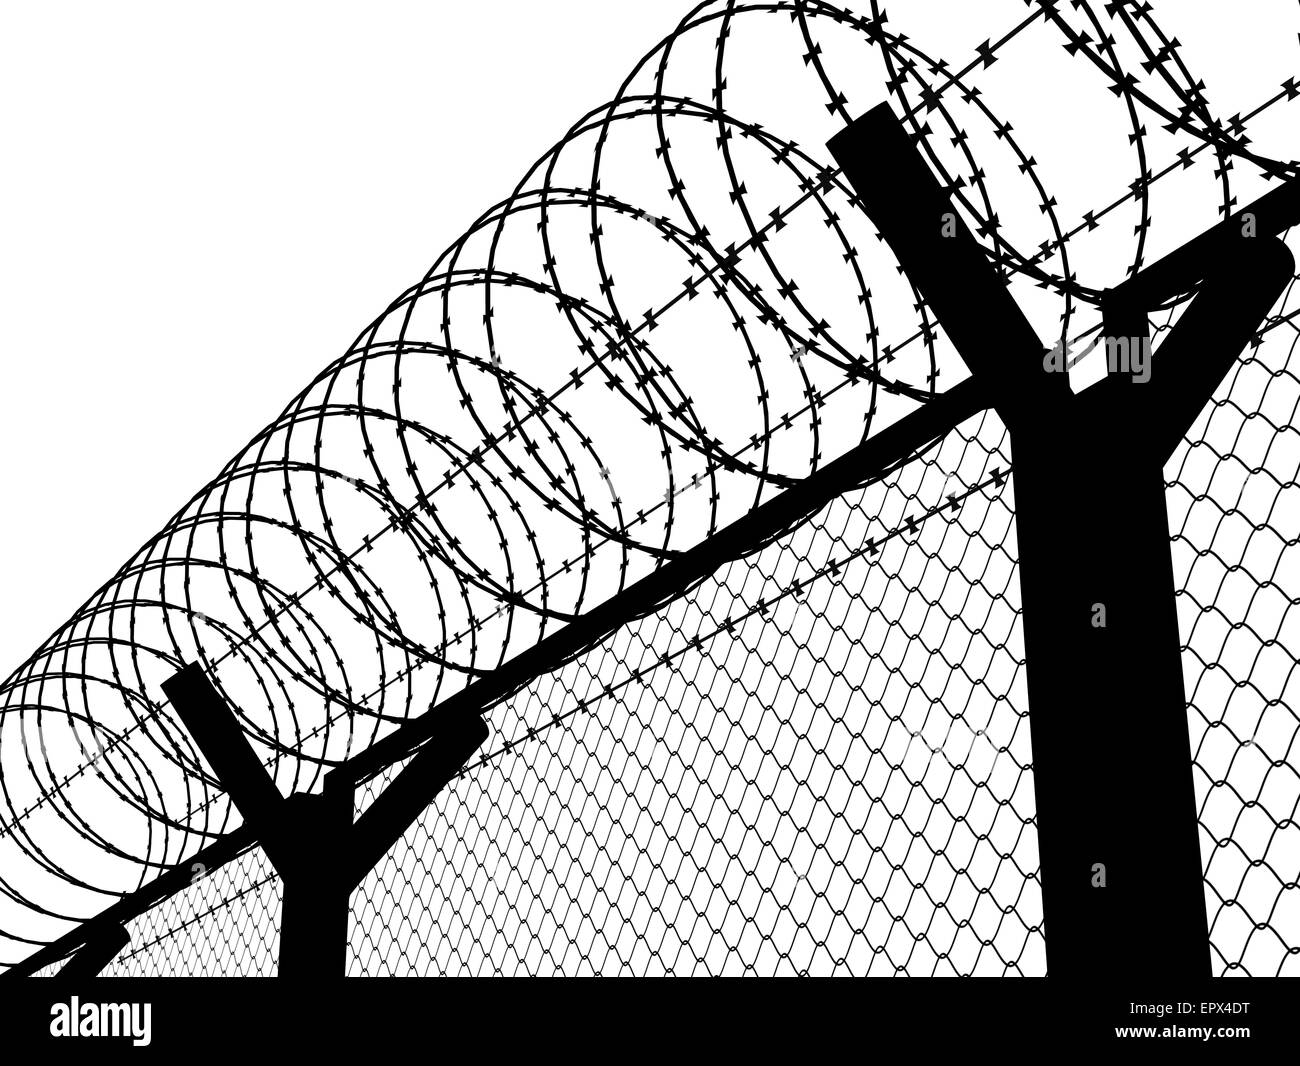 Fence with a barbed wire, silhouette illustration Stock Photo ...